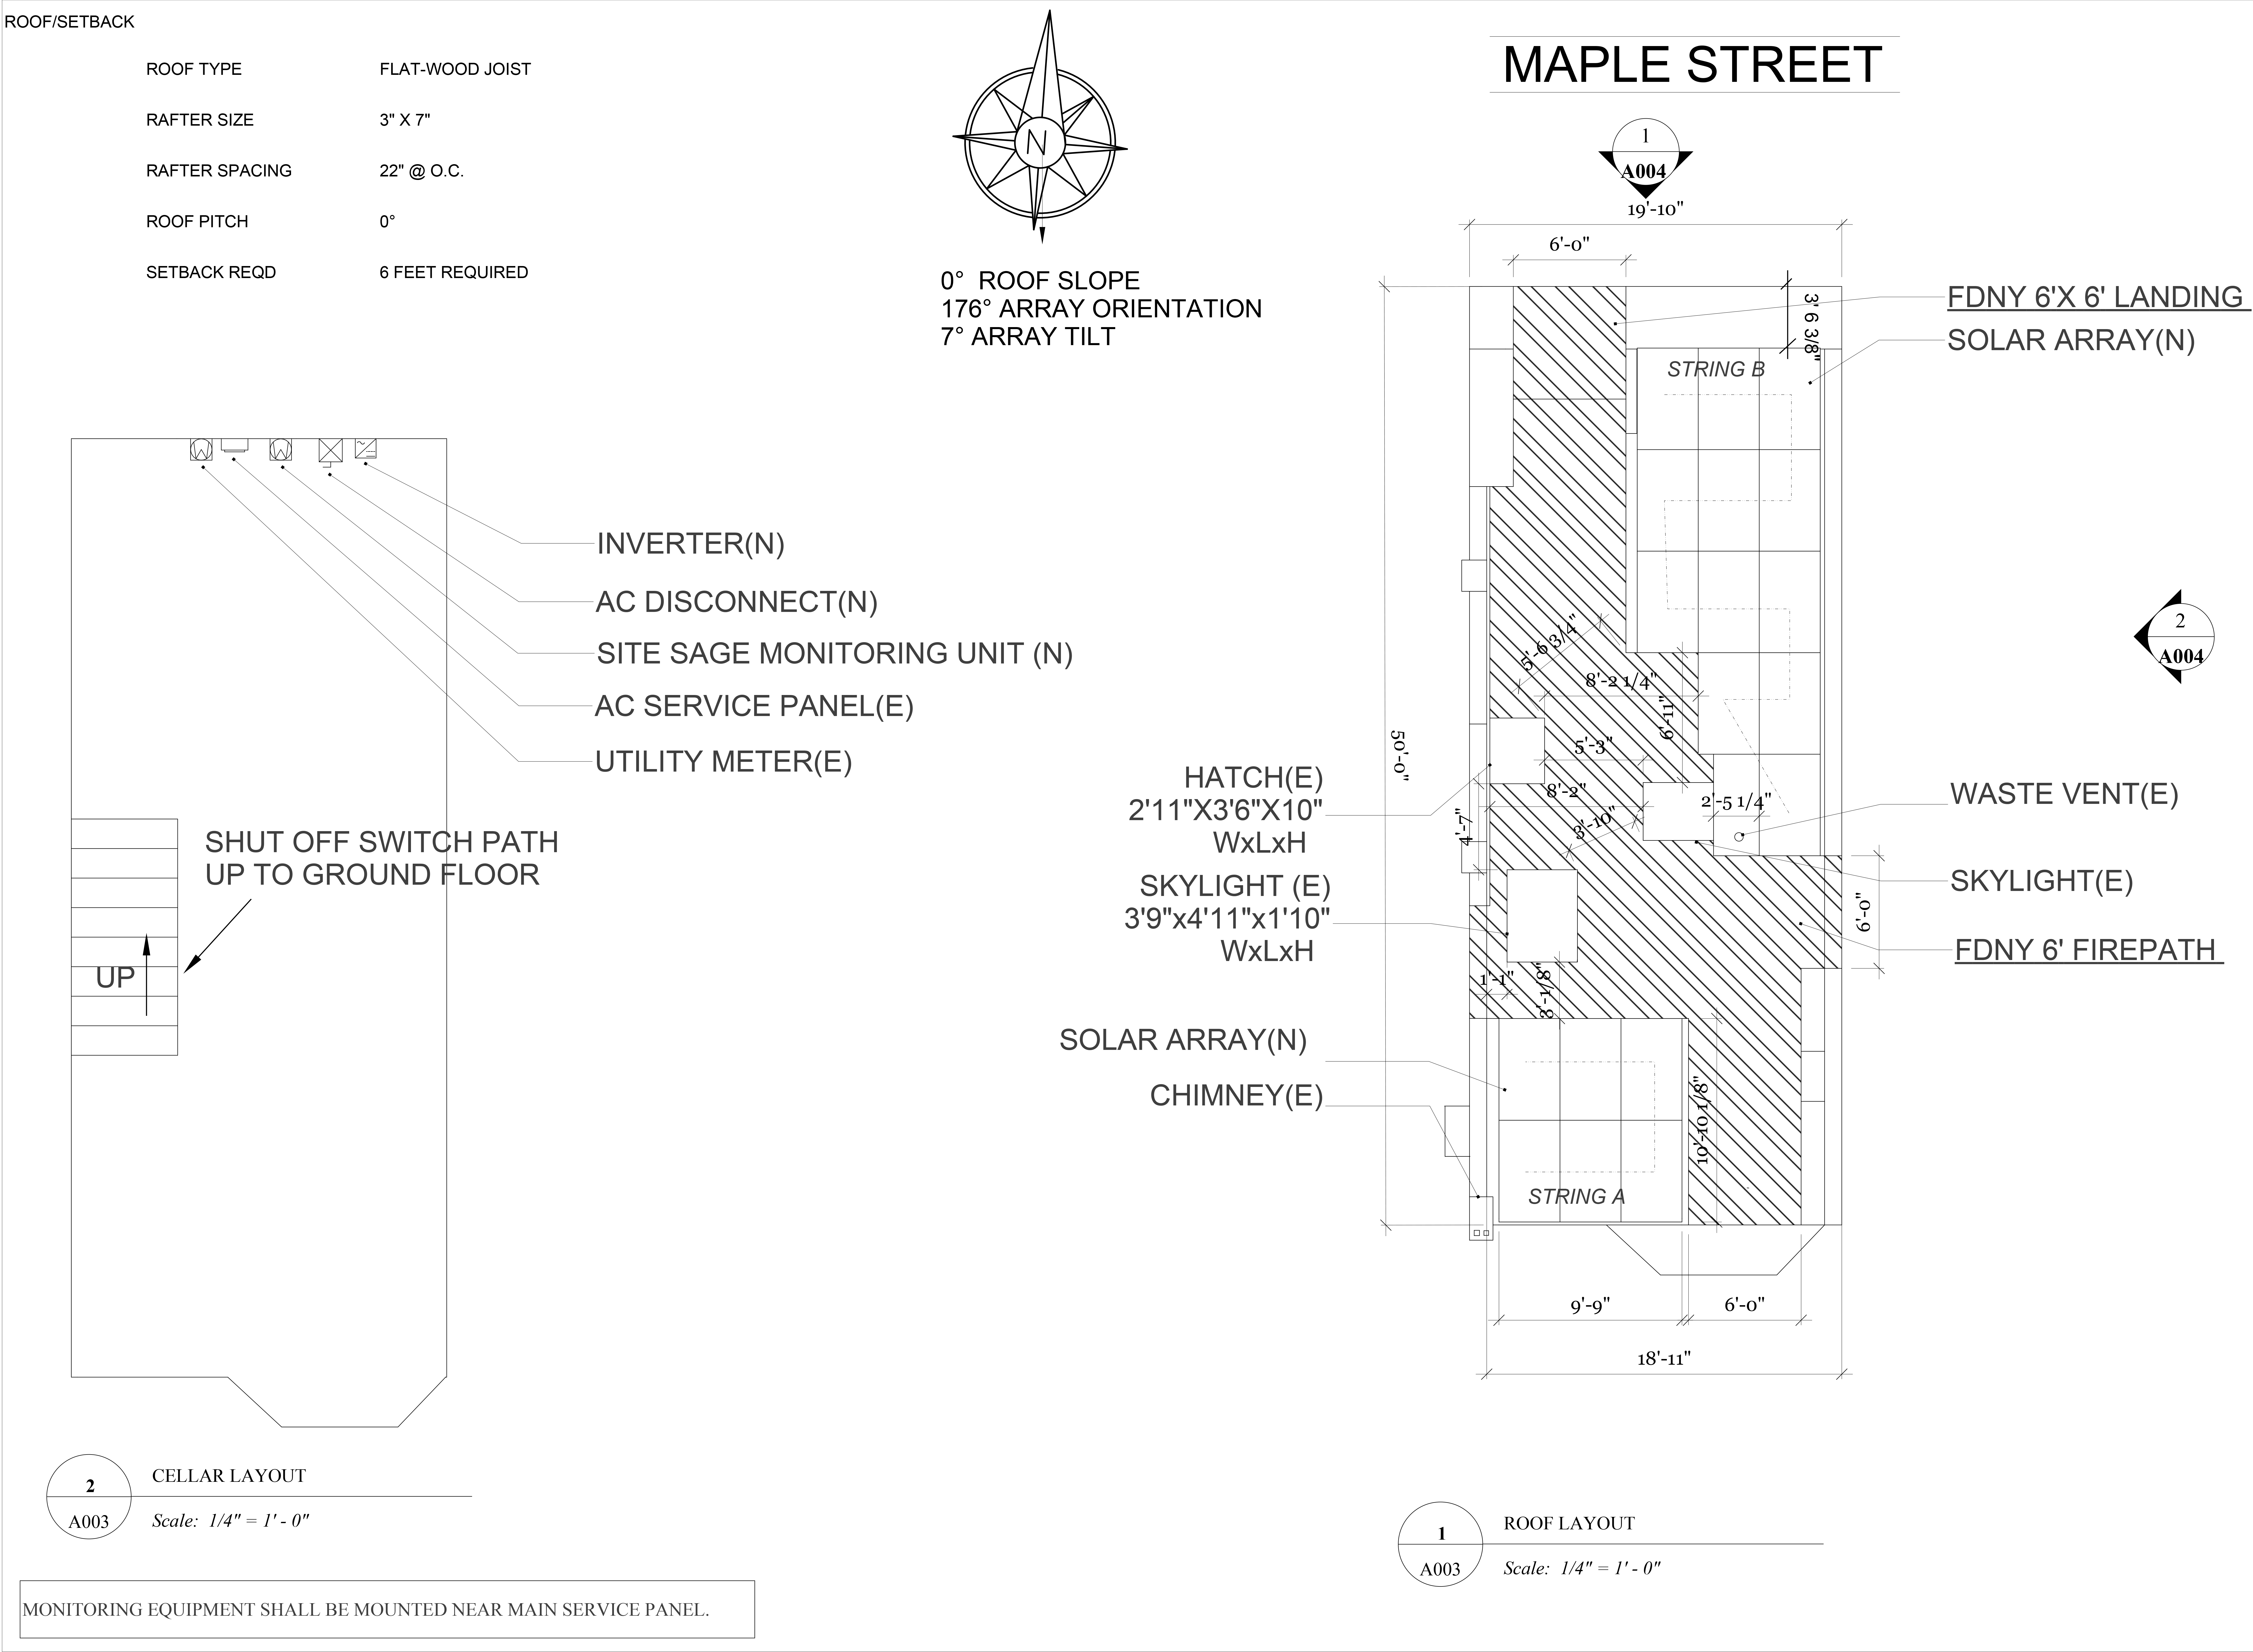 How to install a solar system -  Demonstrate To The Landmarks Preservation Commission That The Solar Panels Would Not Be Visible From The Street Or The Backyards Of Neighboring Homes